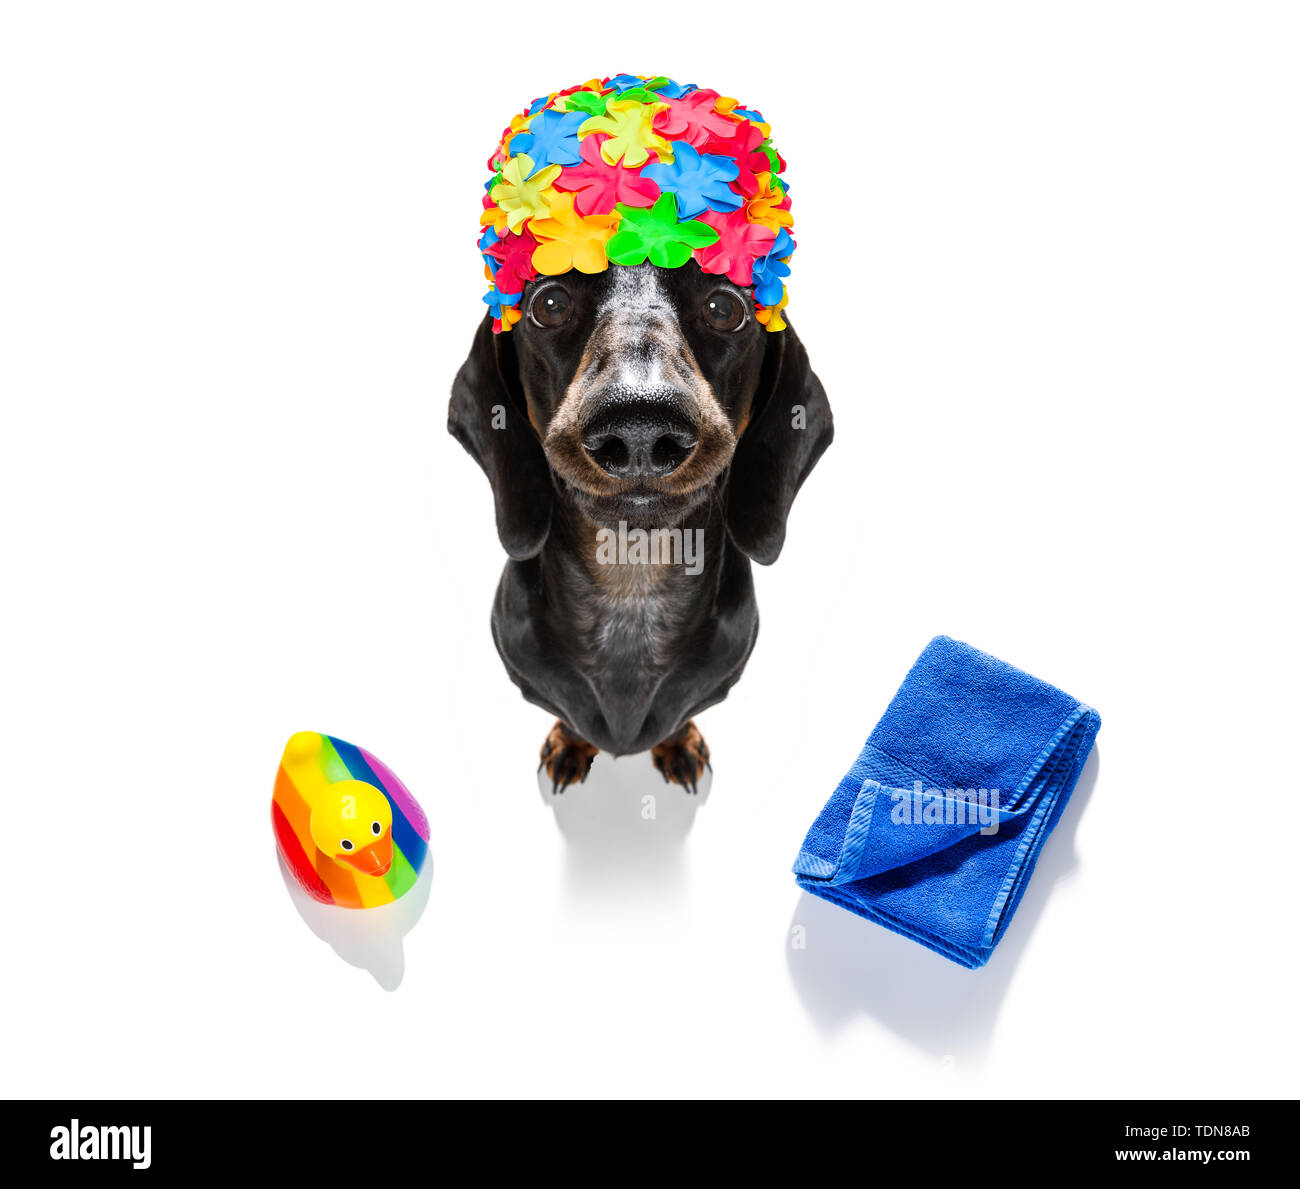 summer vacation sausage dachshund dog with rubber duck and towel wearing bath cap, isolated on white background - Stock Image